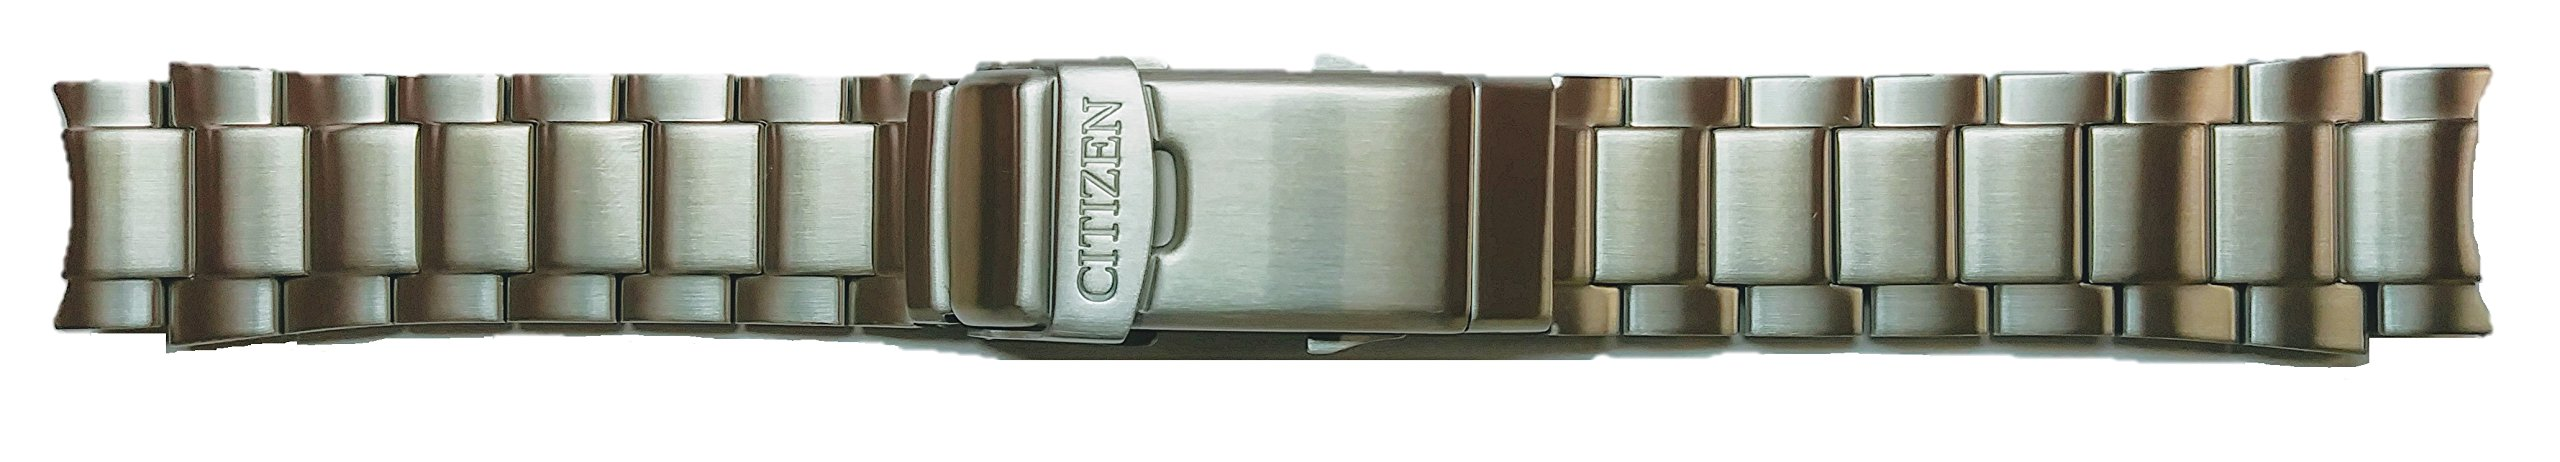 59-S06105 ORIGINAL GENUINE Citizen Promaster Silver Tone Stainless Steel Watch Band for Men's Dive Watch BN0150-61E, BN0150-87E, BN0156-56E, BN0150-10E, BN0156-05E, BN0150-28E, BN0151-09L